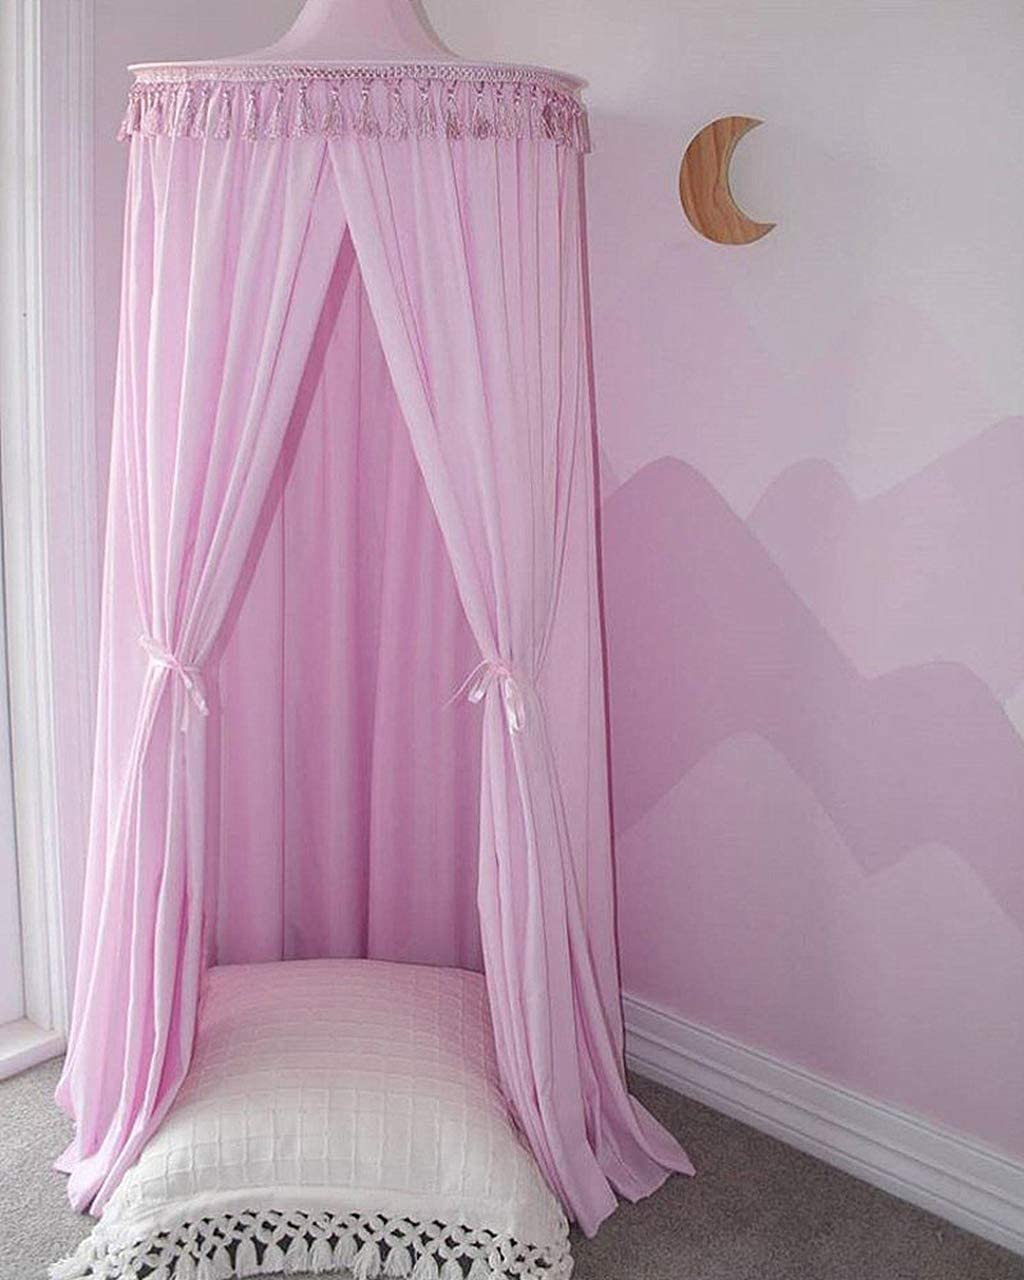 Cotton Mosquito Net Pink Bed Canopy for Reading Room 60240cm Kids Bedroom Decoration Big Size Cotton Bed Canopy Bed Canopy Round Dome with Tassel